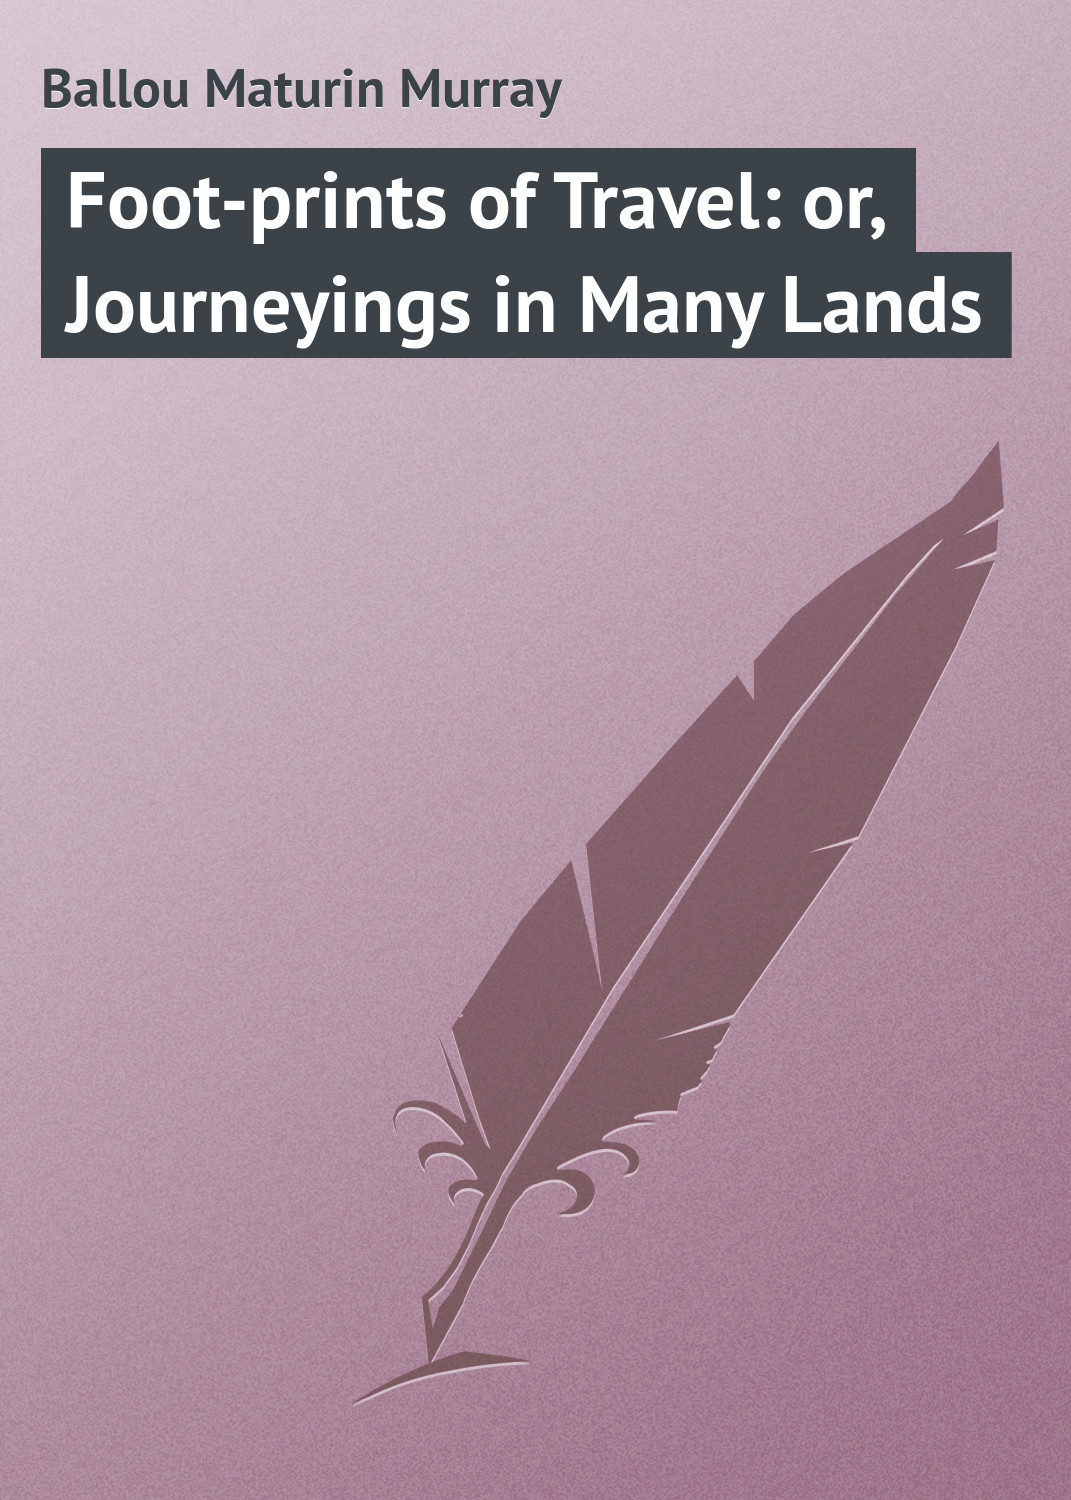 цена Ballou Maturin Murray Foot-prints of Travel: or, Journeyings in Many Lands онлайн в 2017 году